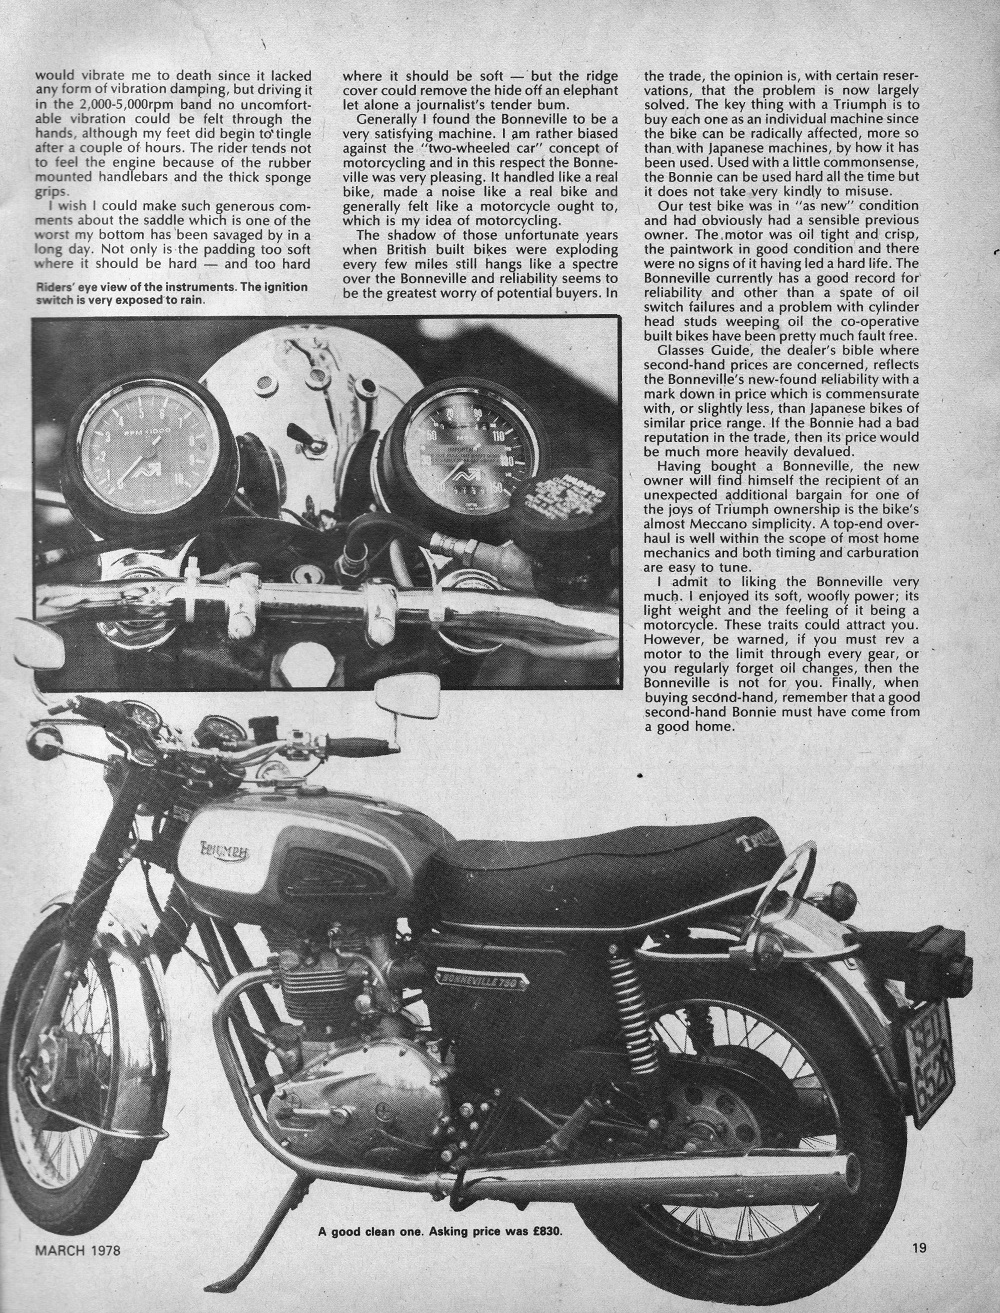 1977 Triumph Bonneville road test.3.jpg